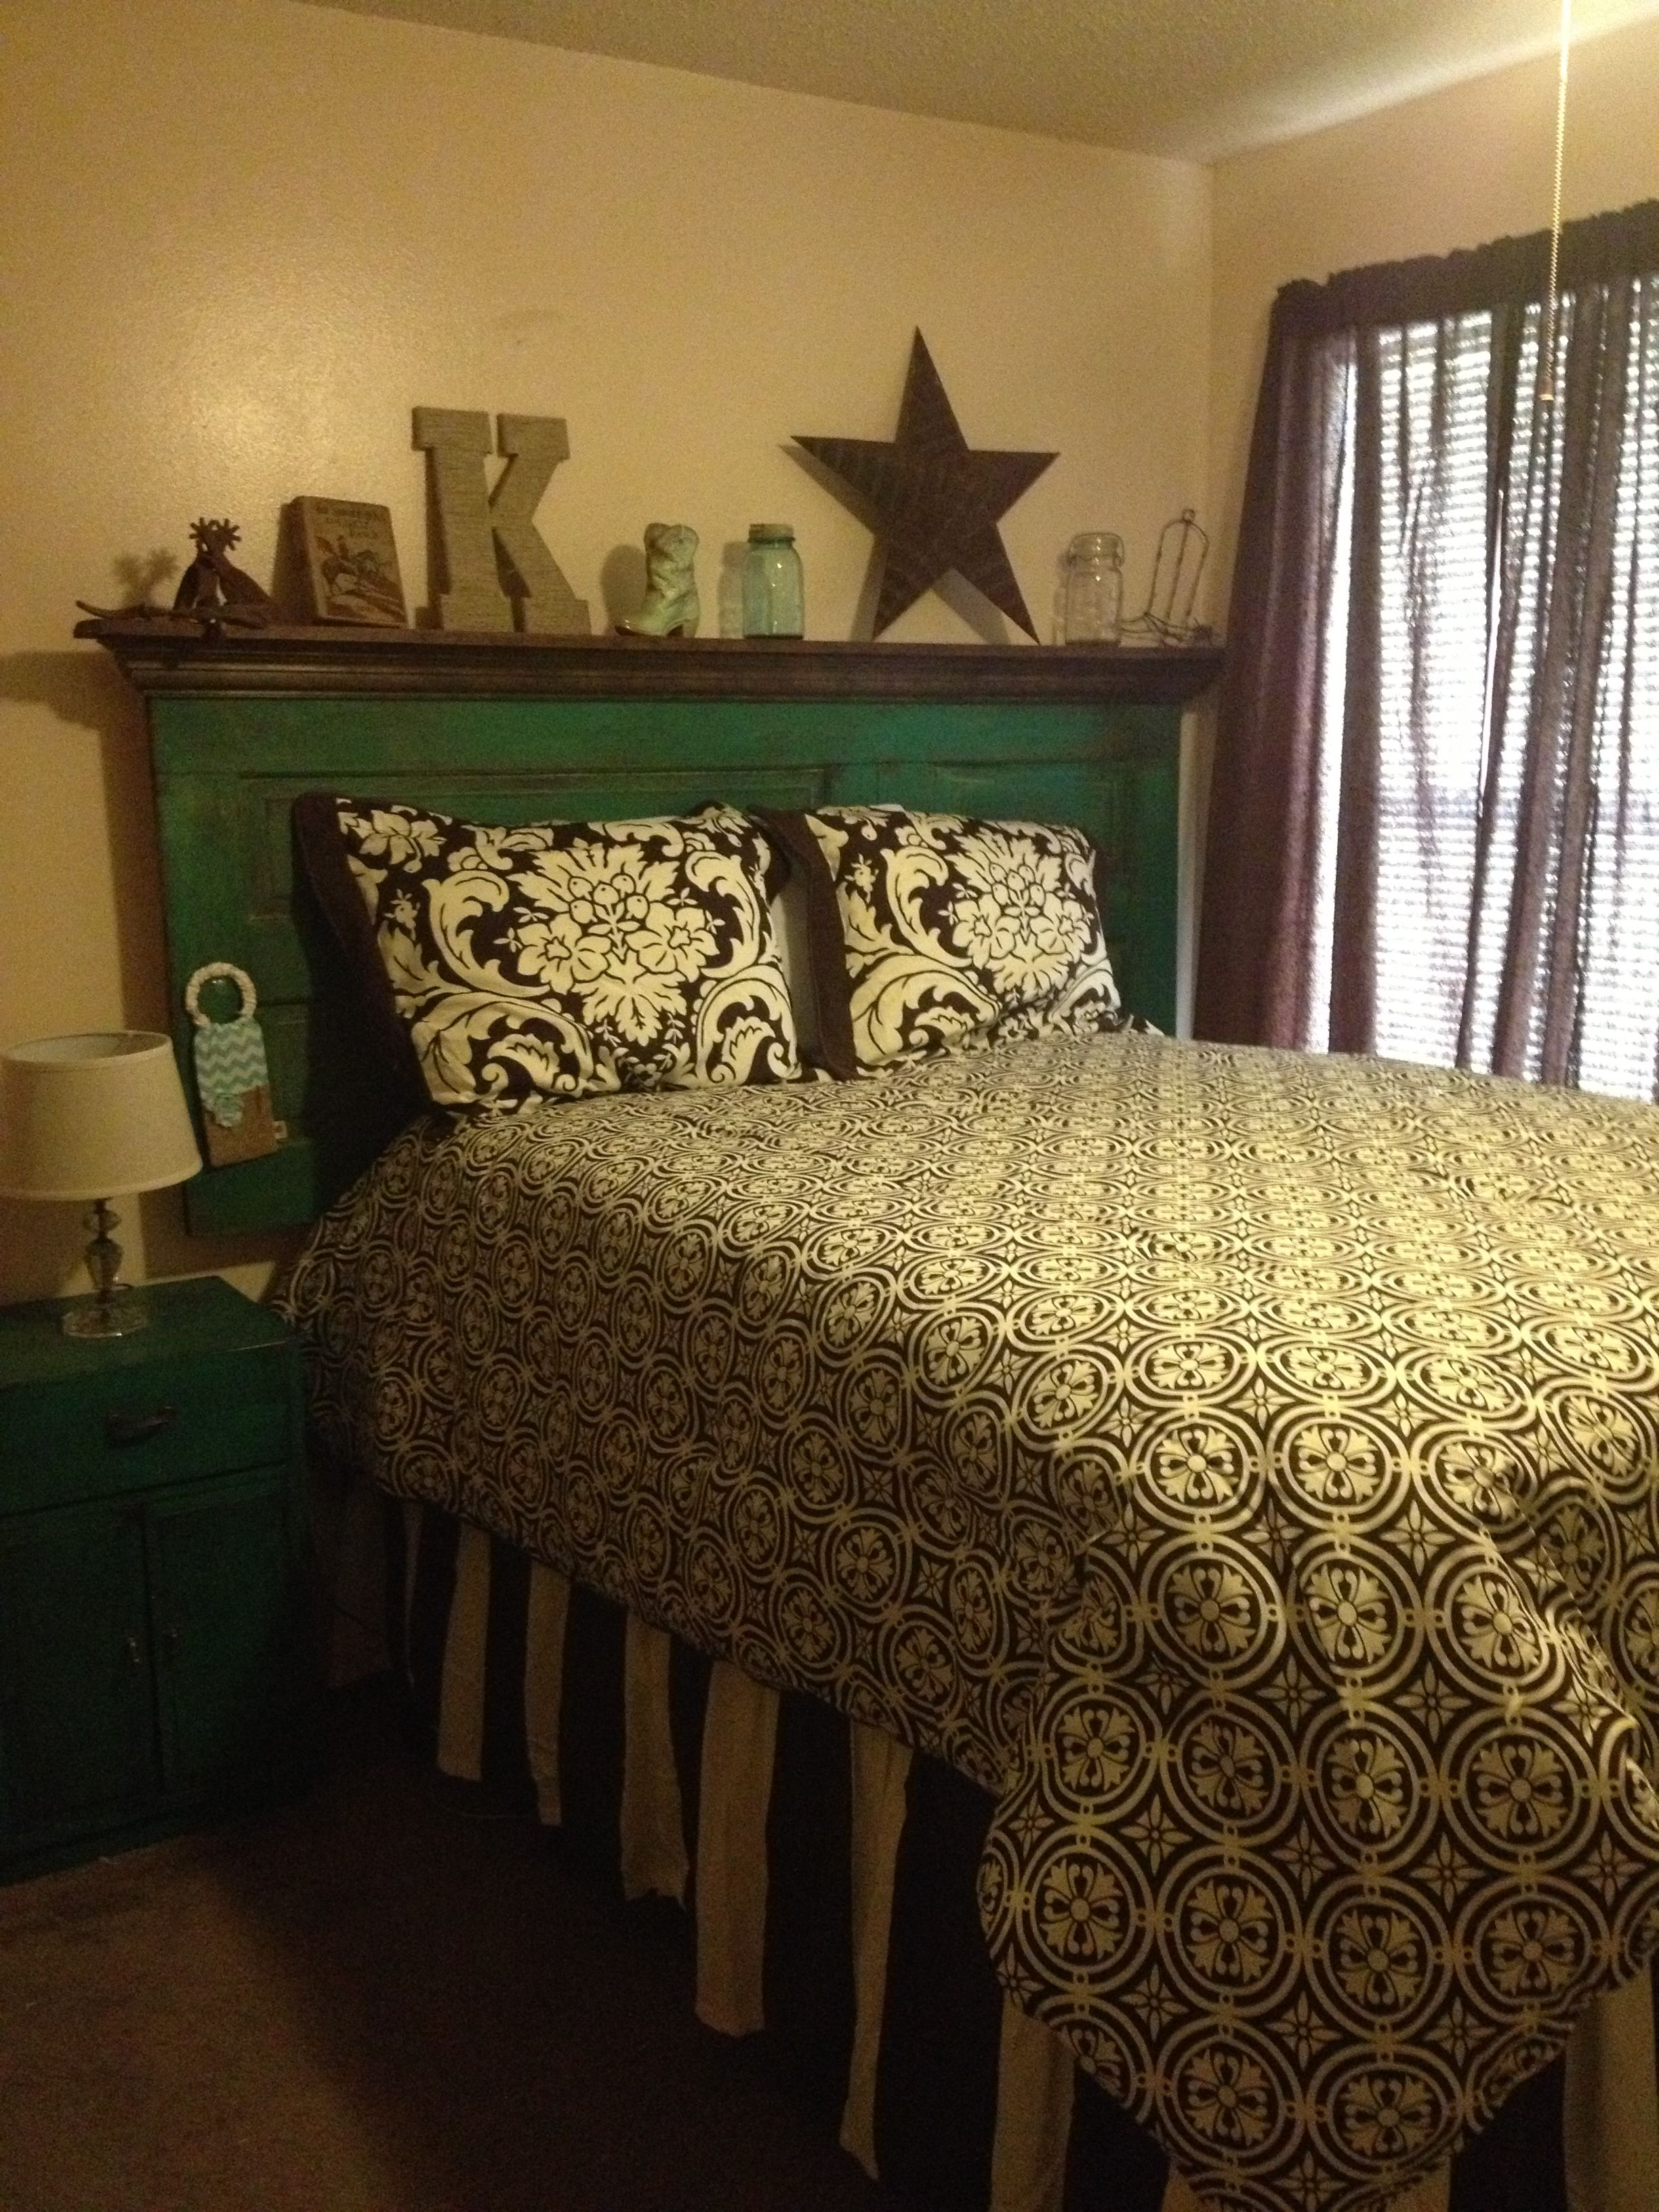 Charmant Old Door Remade Into A Headboard. Cowgirl Bedroom.